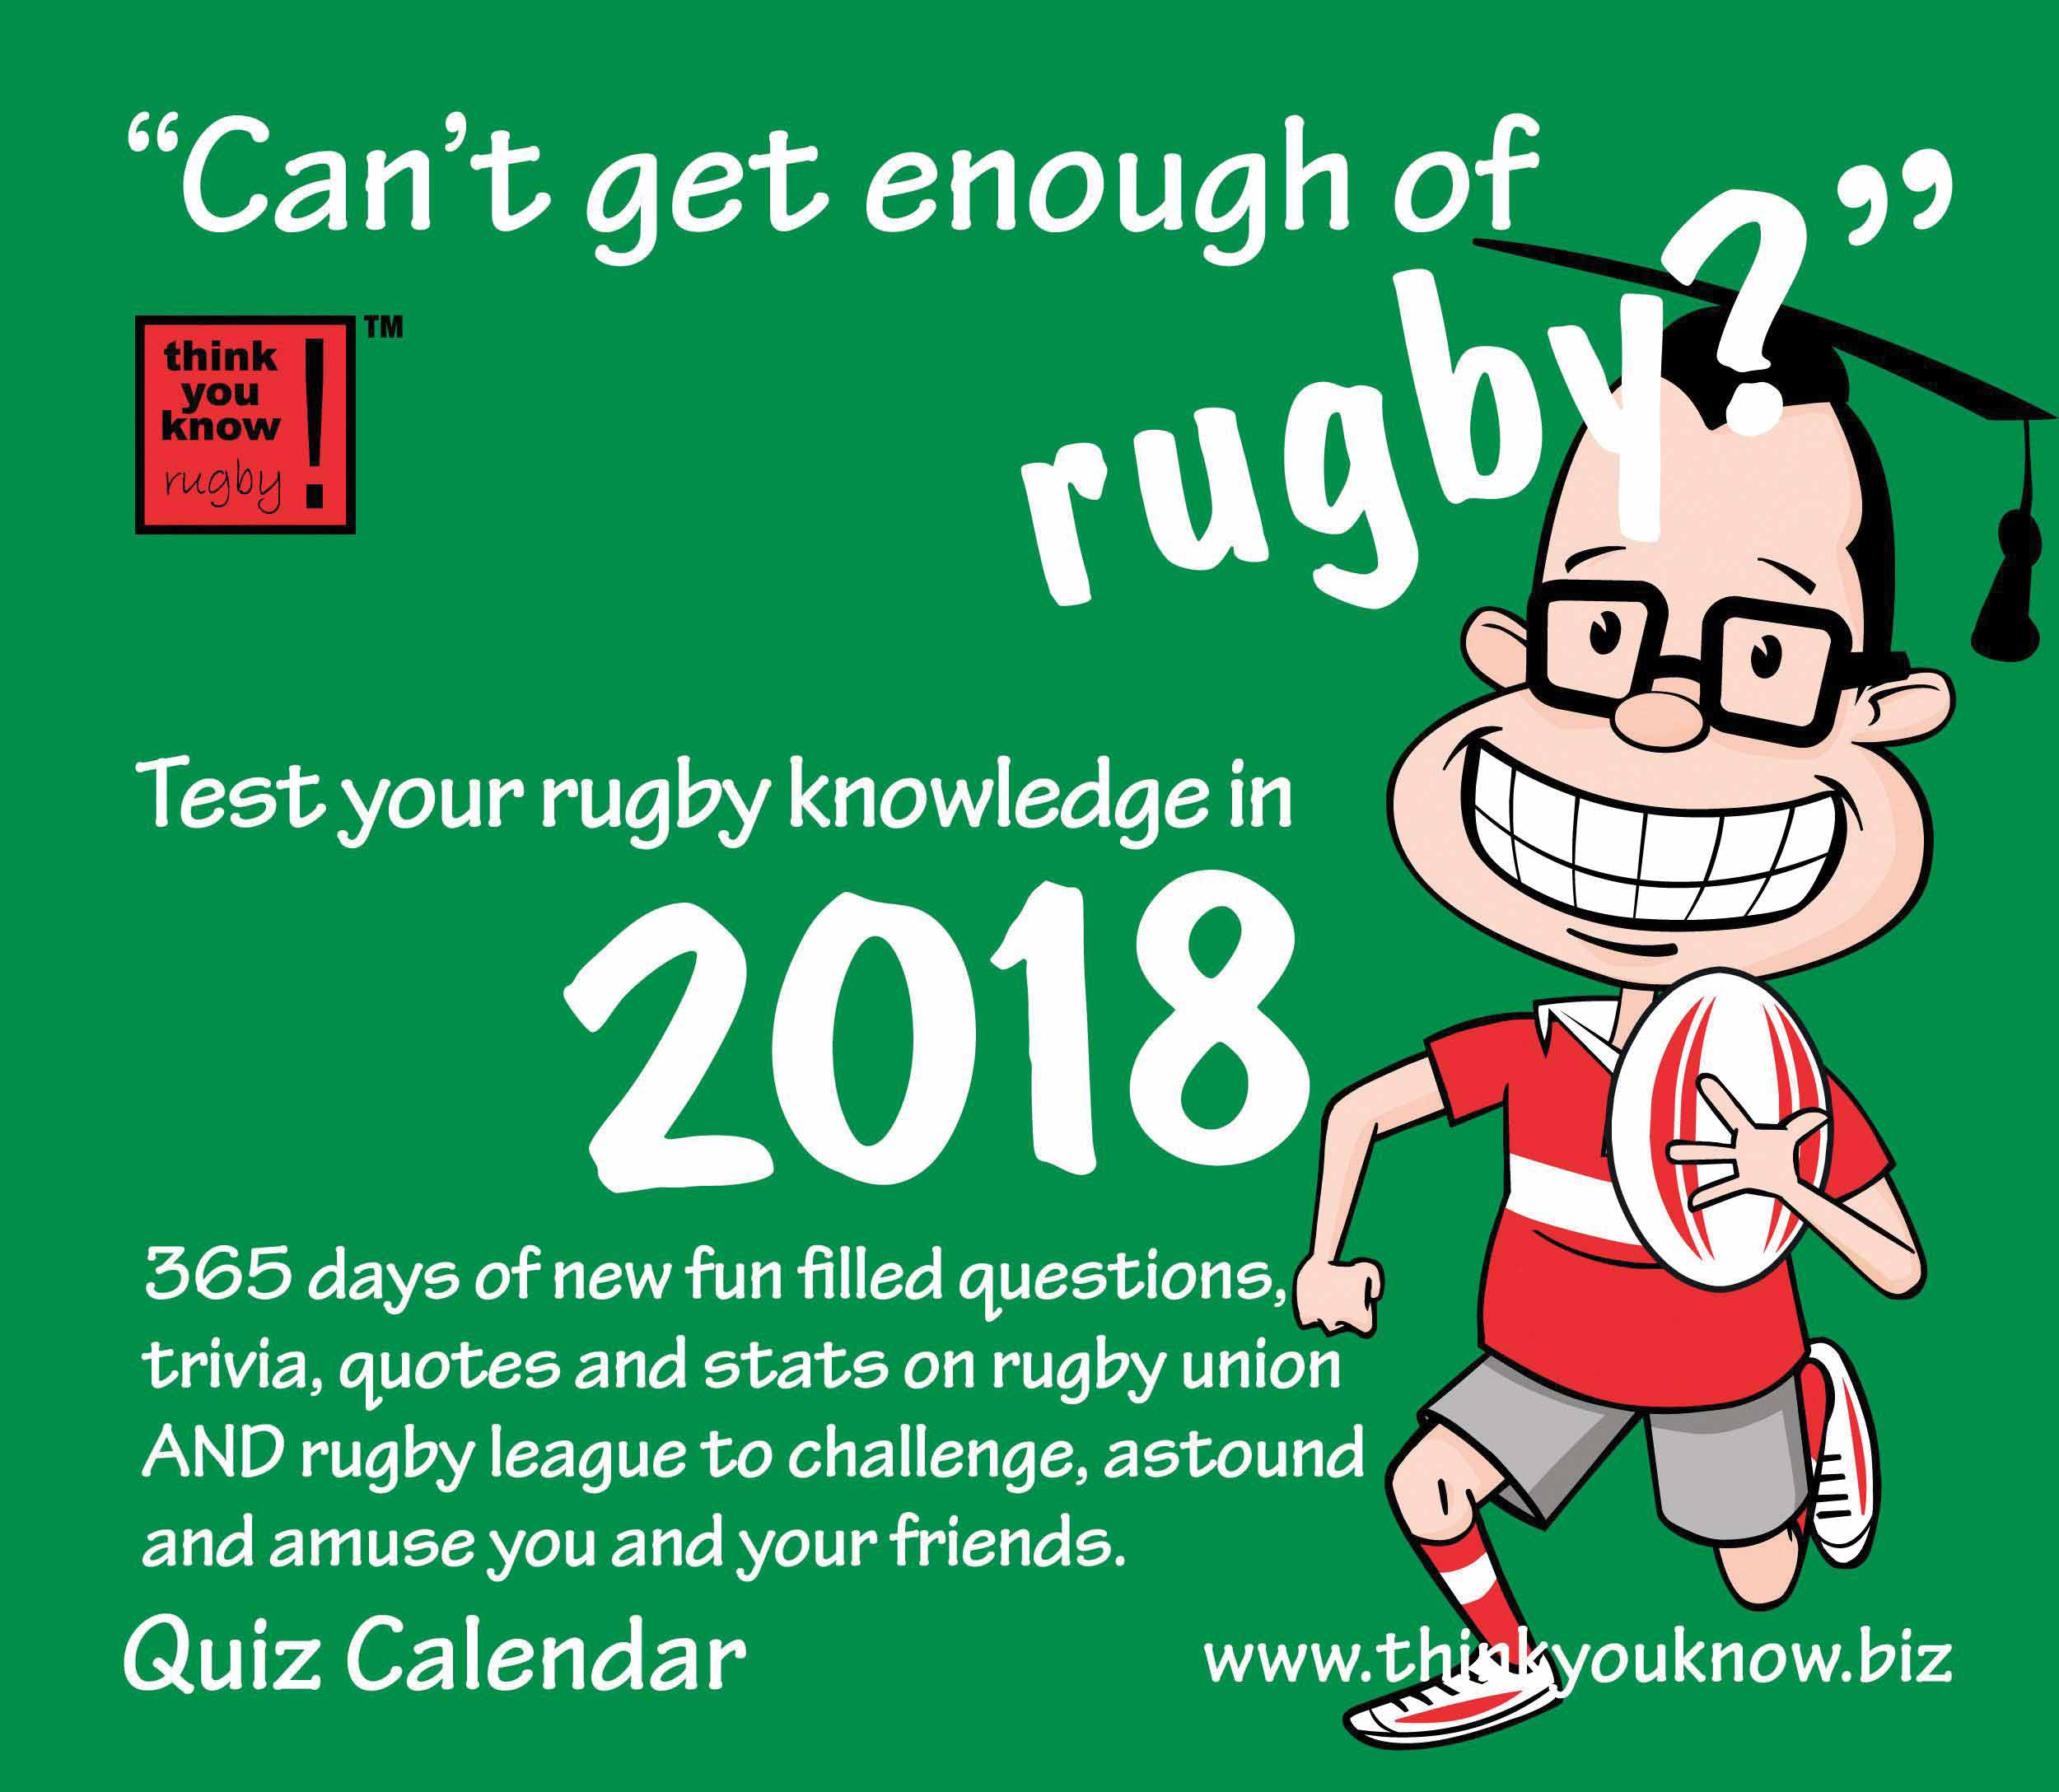 Can t Get Enough of Rugby Desk Calendar 2018